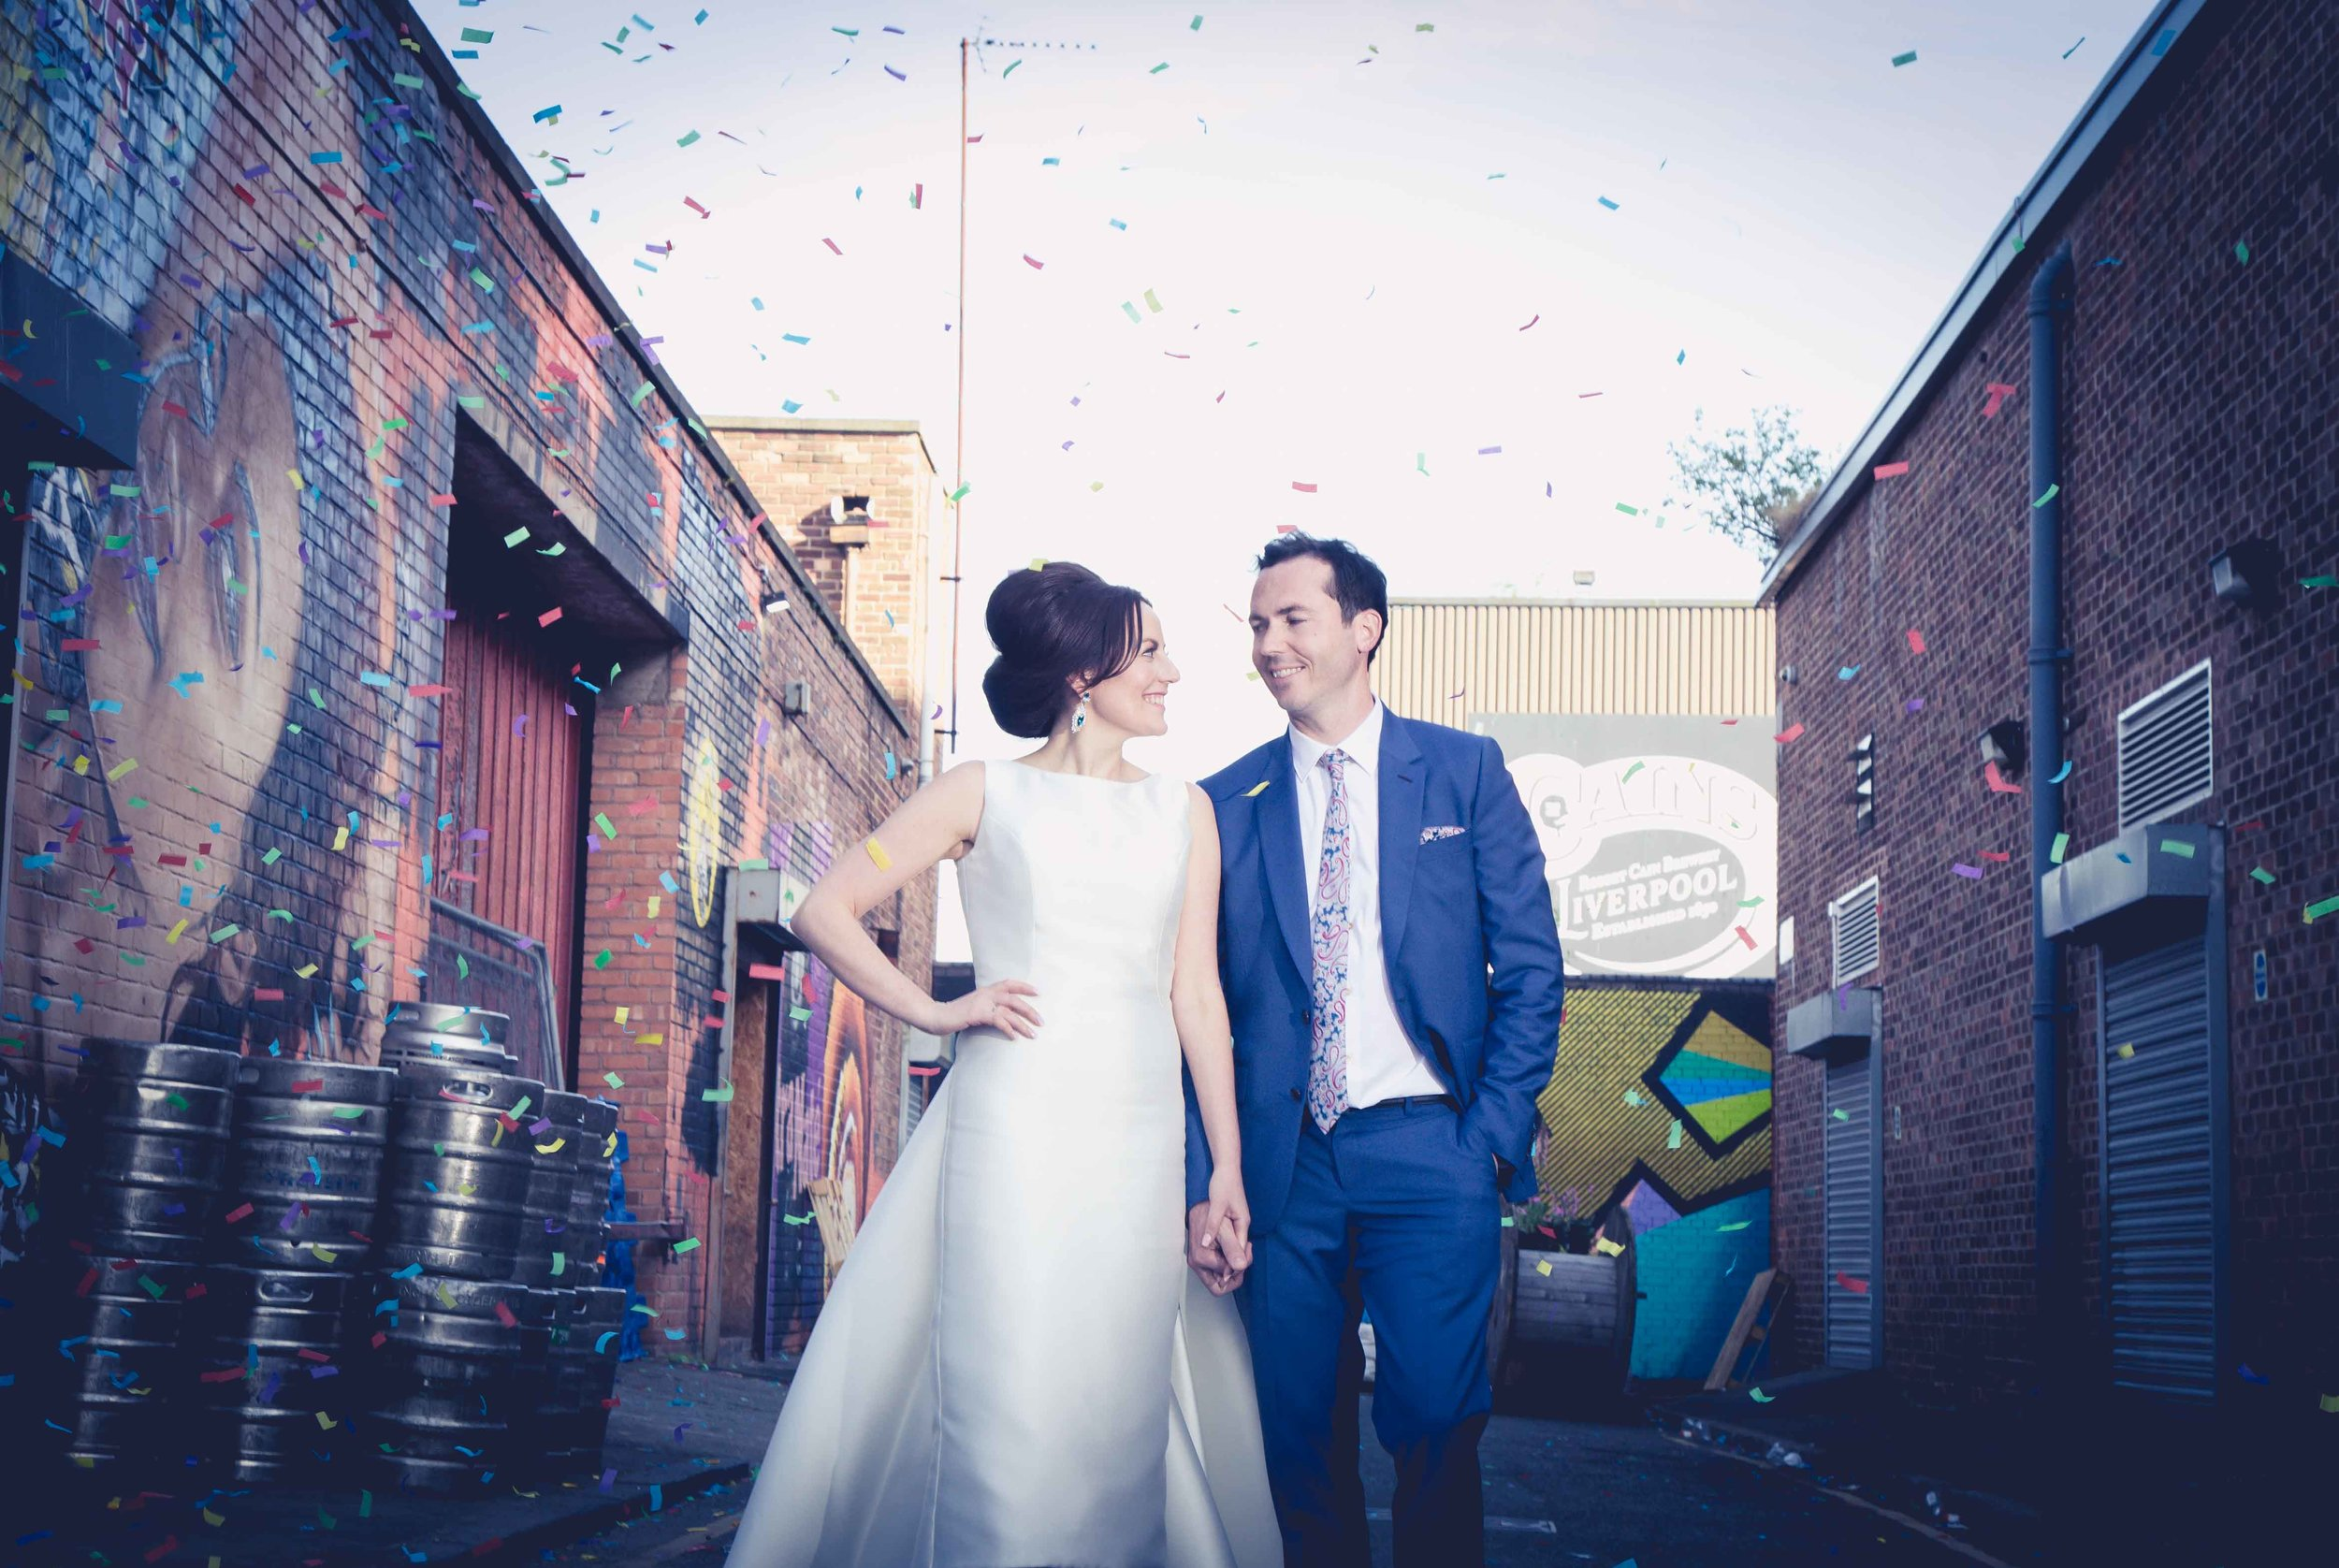 Wedding at the Constellations Liverpool (1 of 1)-6.jpg